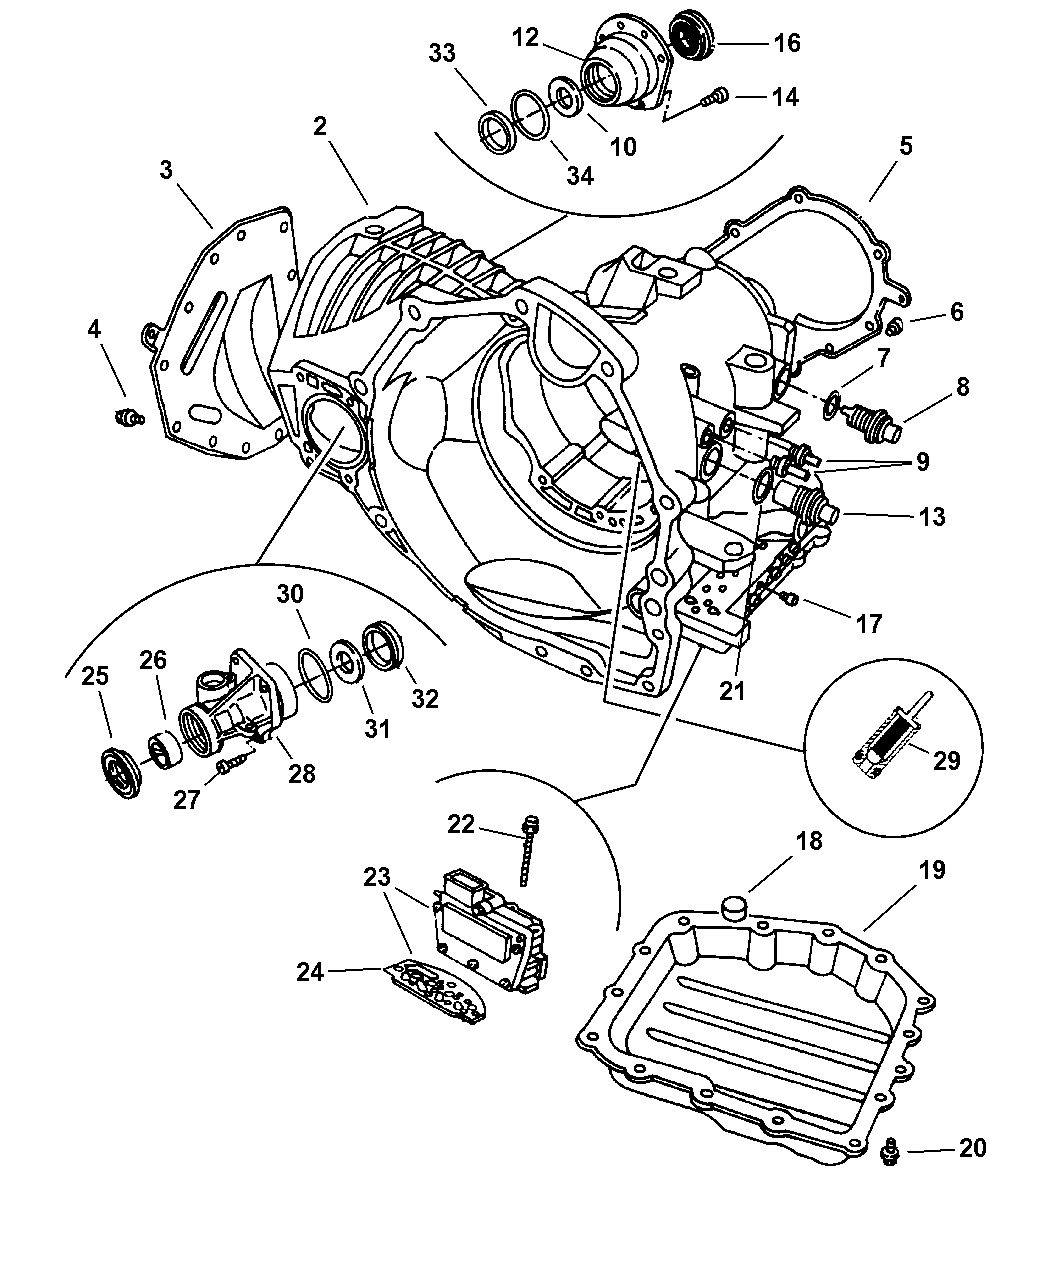 2005 Dodge Caravan Automatic Transmission Parts Diagram